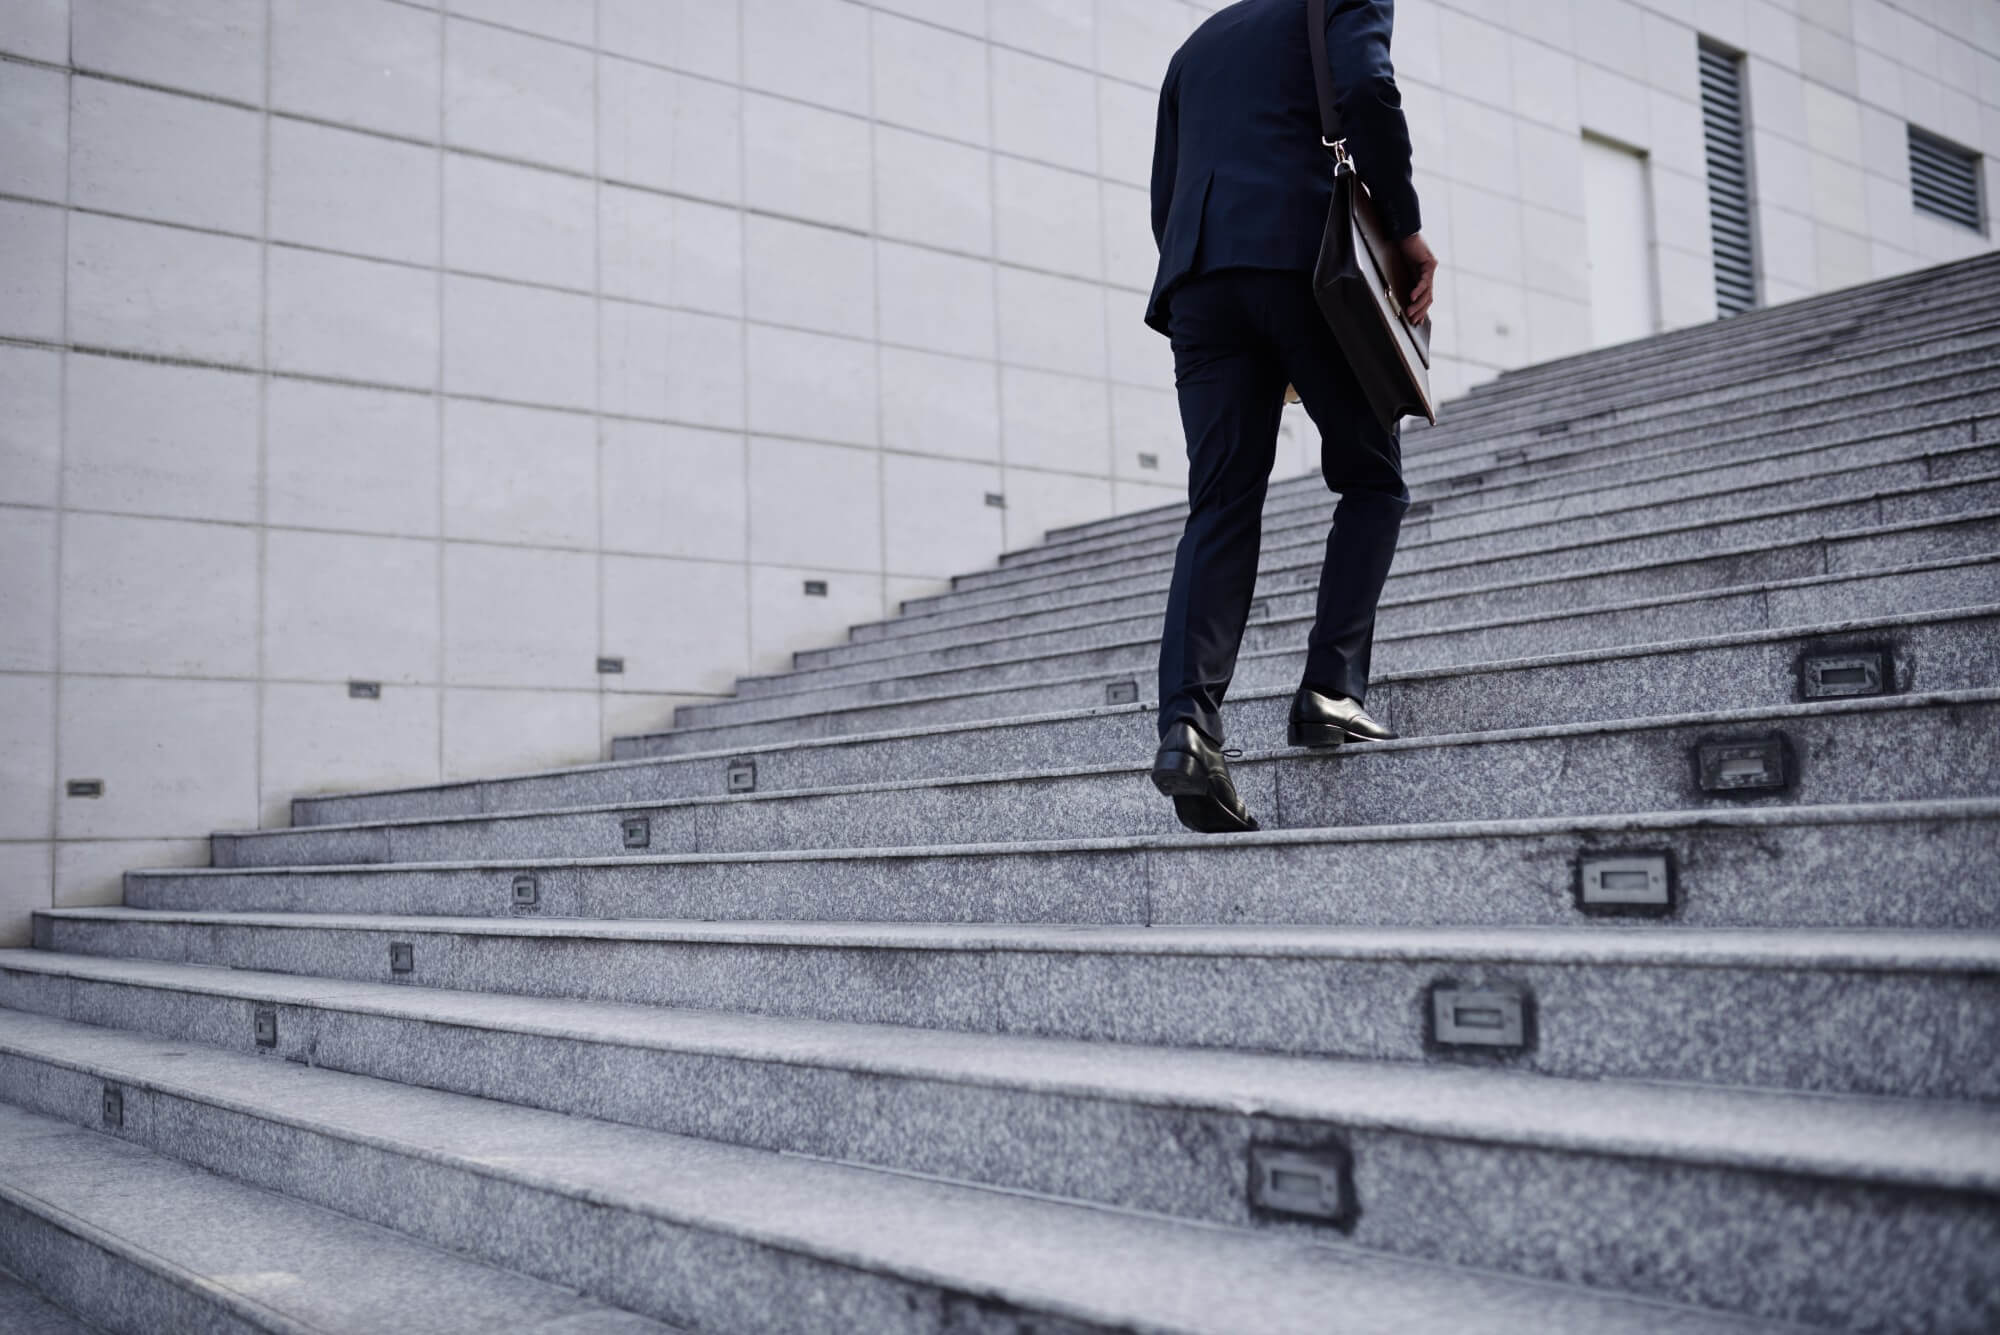 Heart Health Benefits of Taking the Stairs